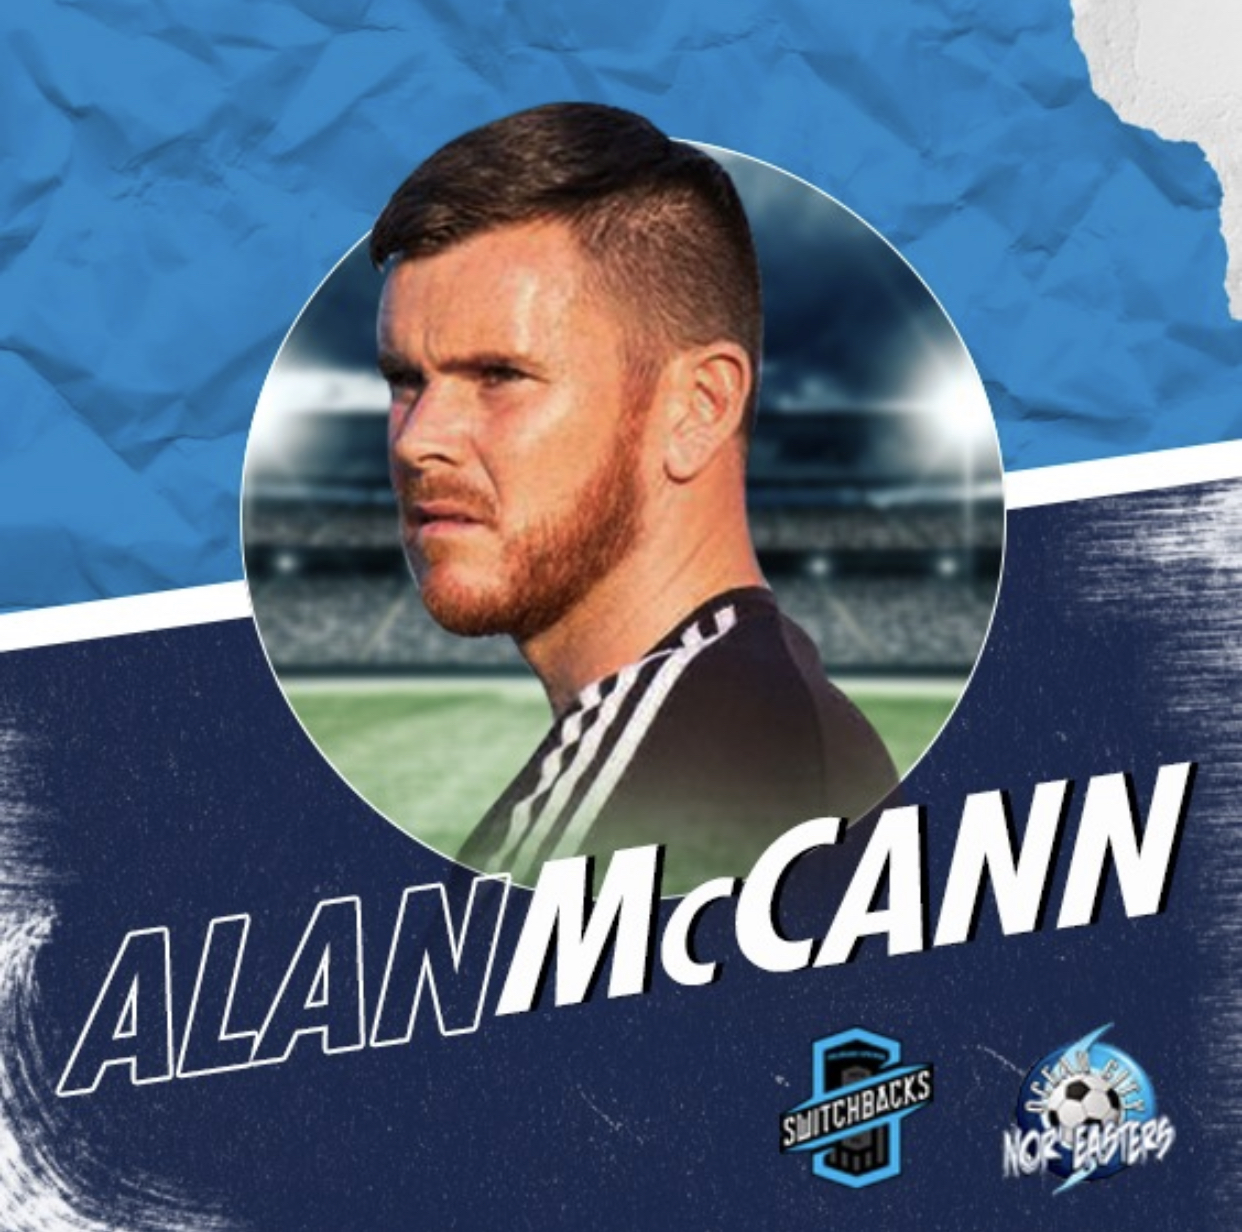 Nor'easters coach Alan McCann adds role with USL Championship side